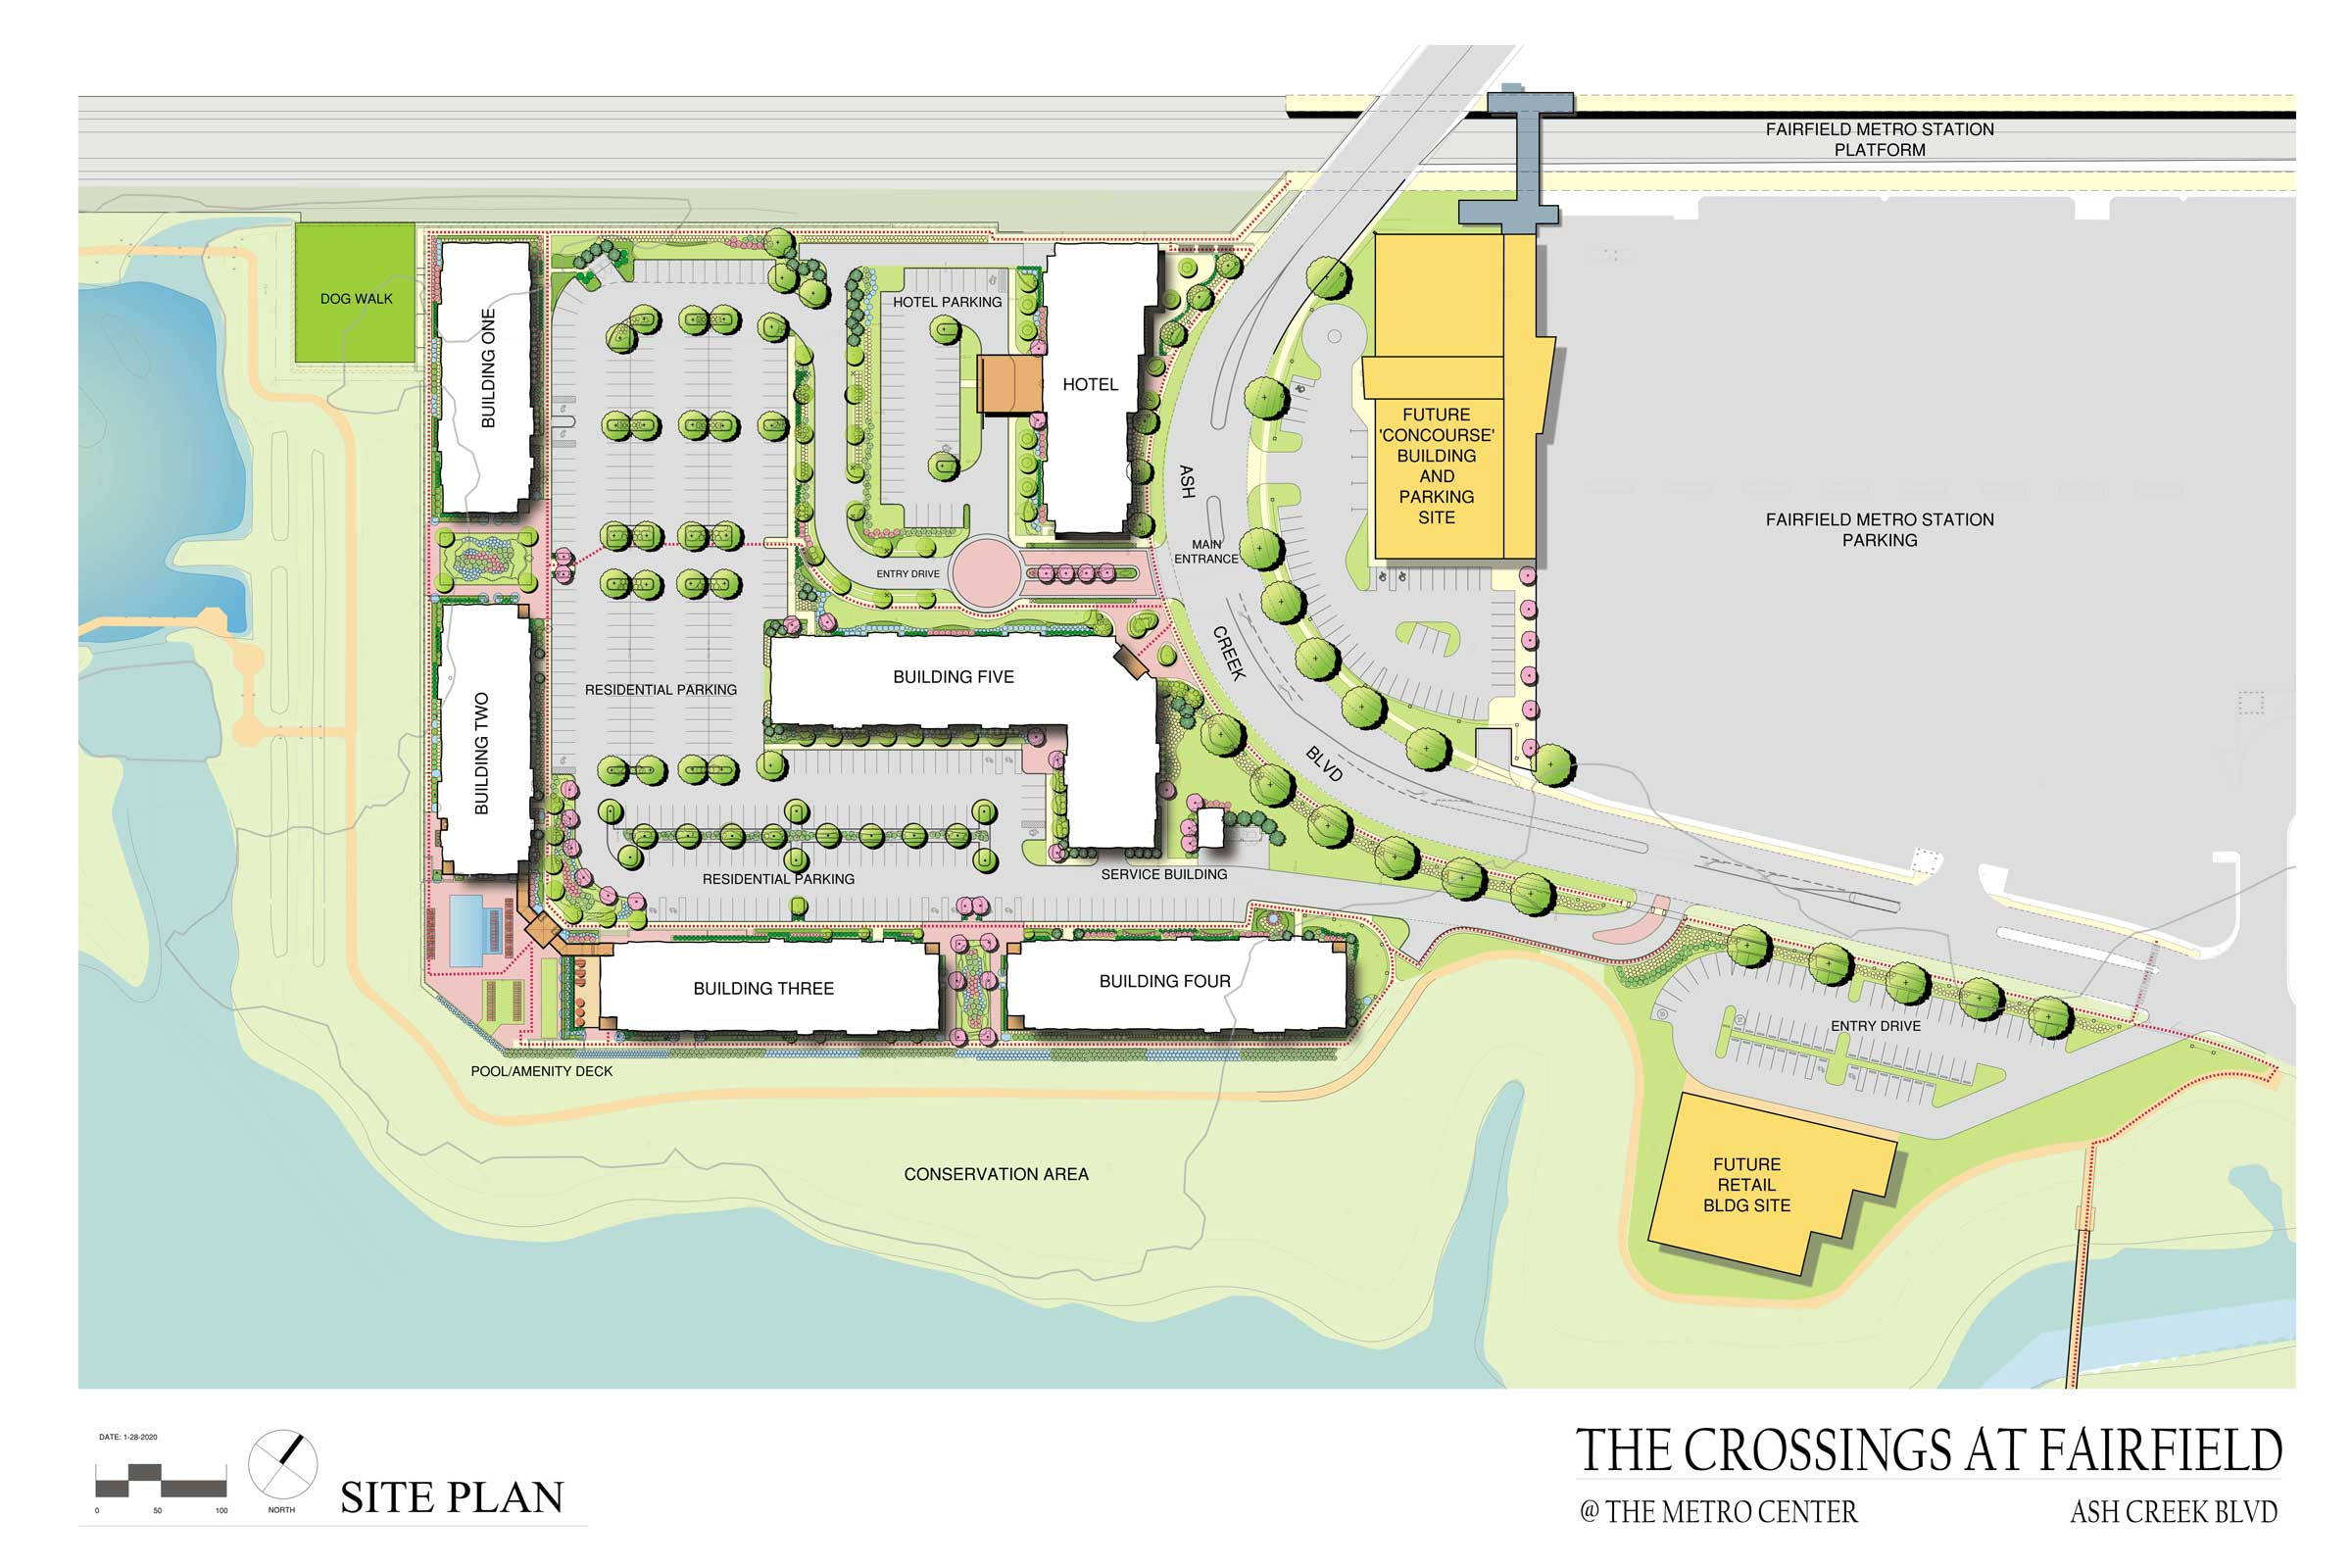 site plan for crossings at fairfield metro